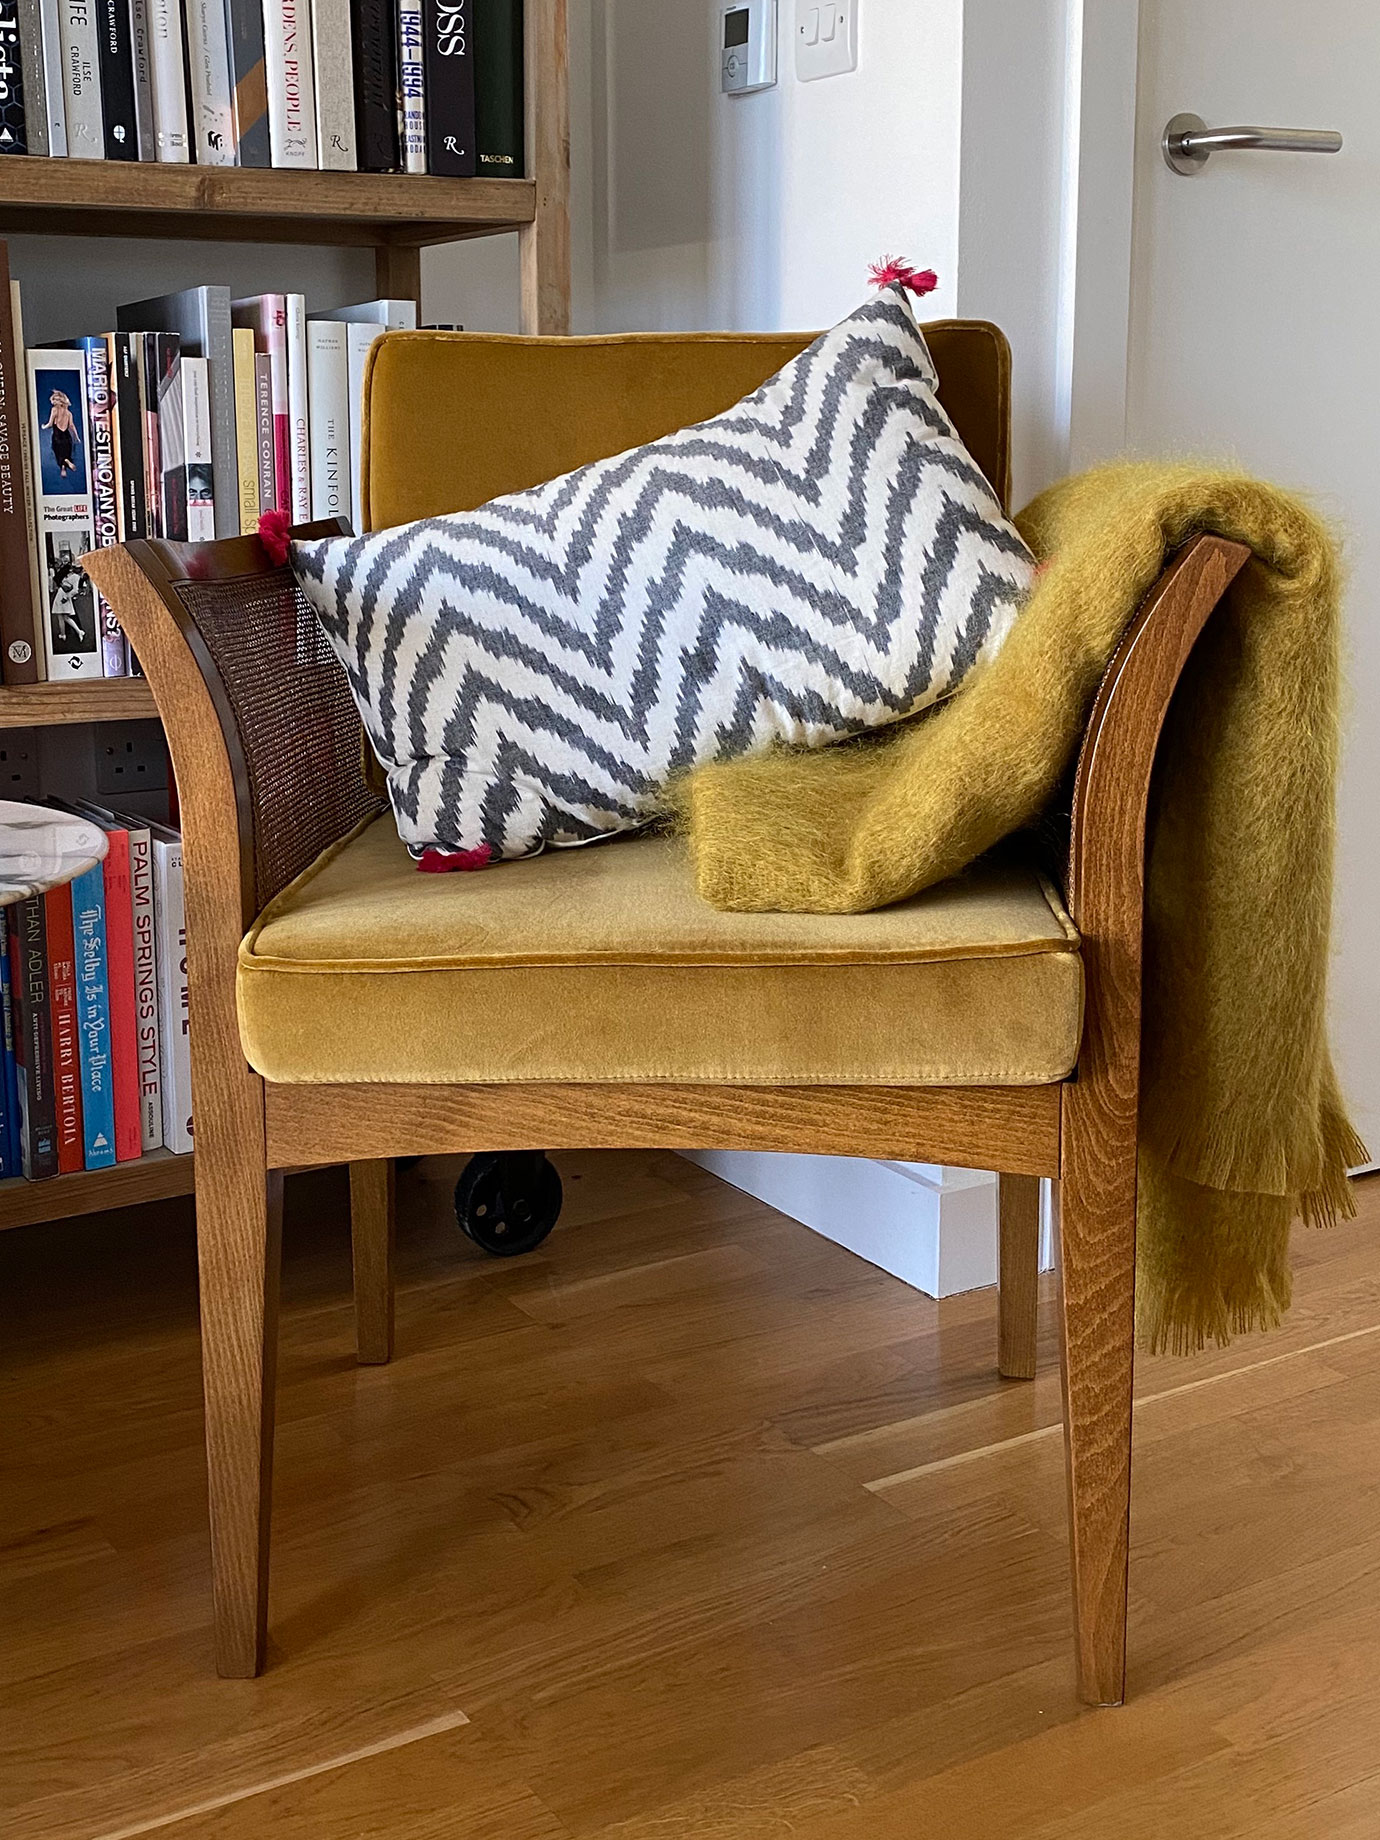 A wooden chair with a cushion and a throw on it.